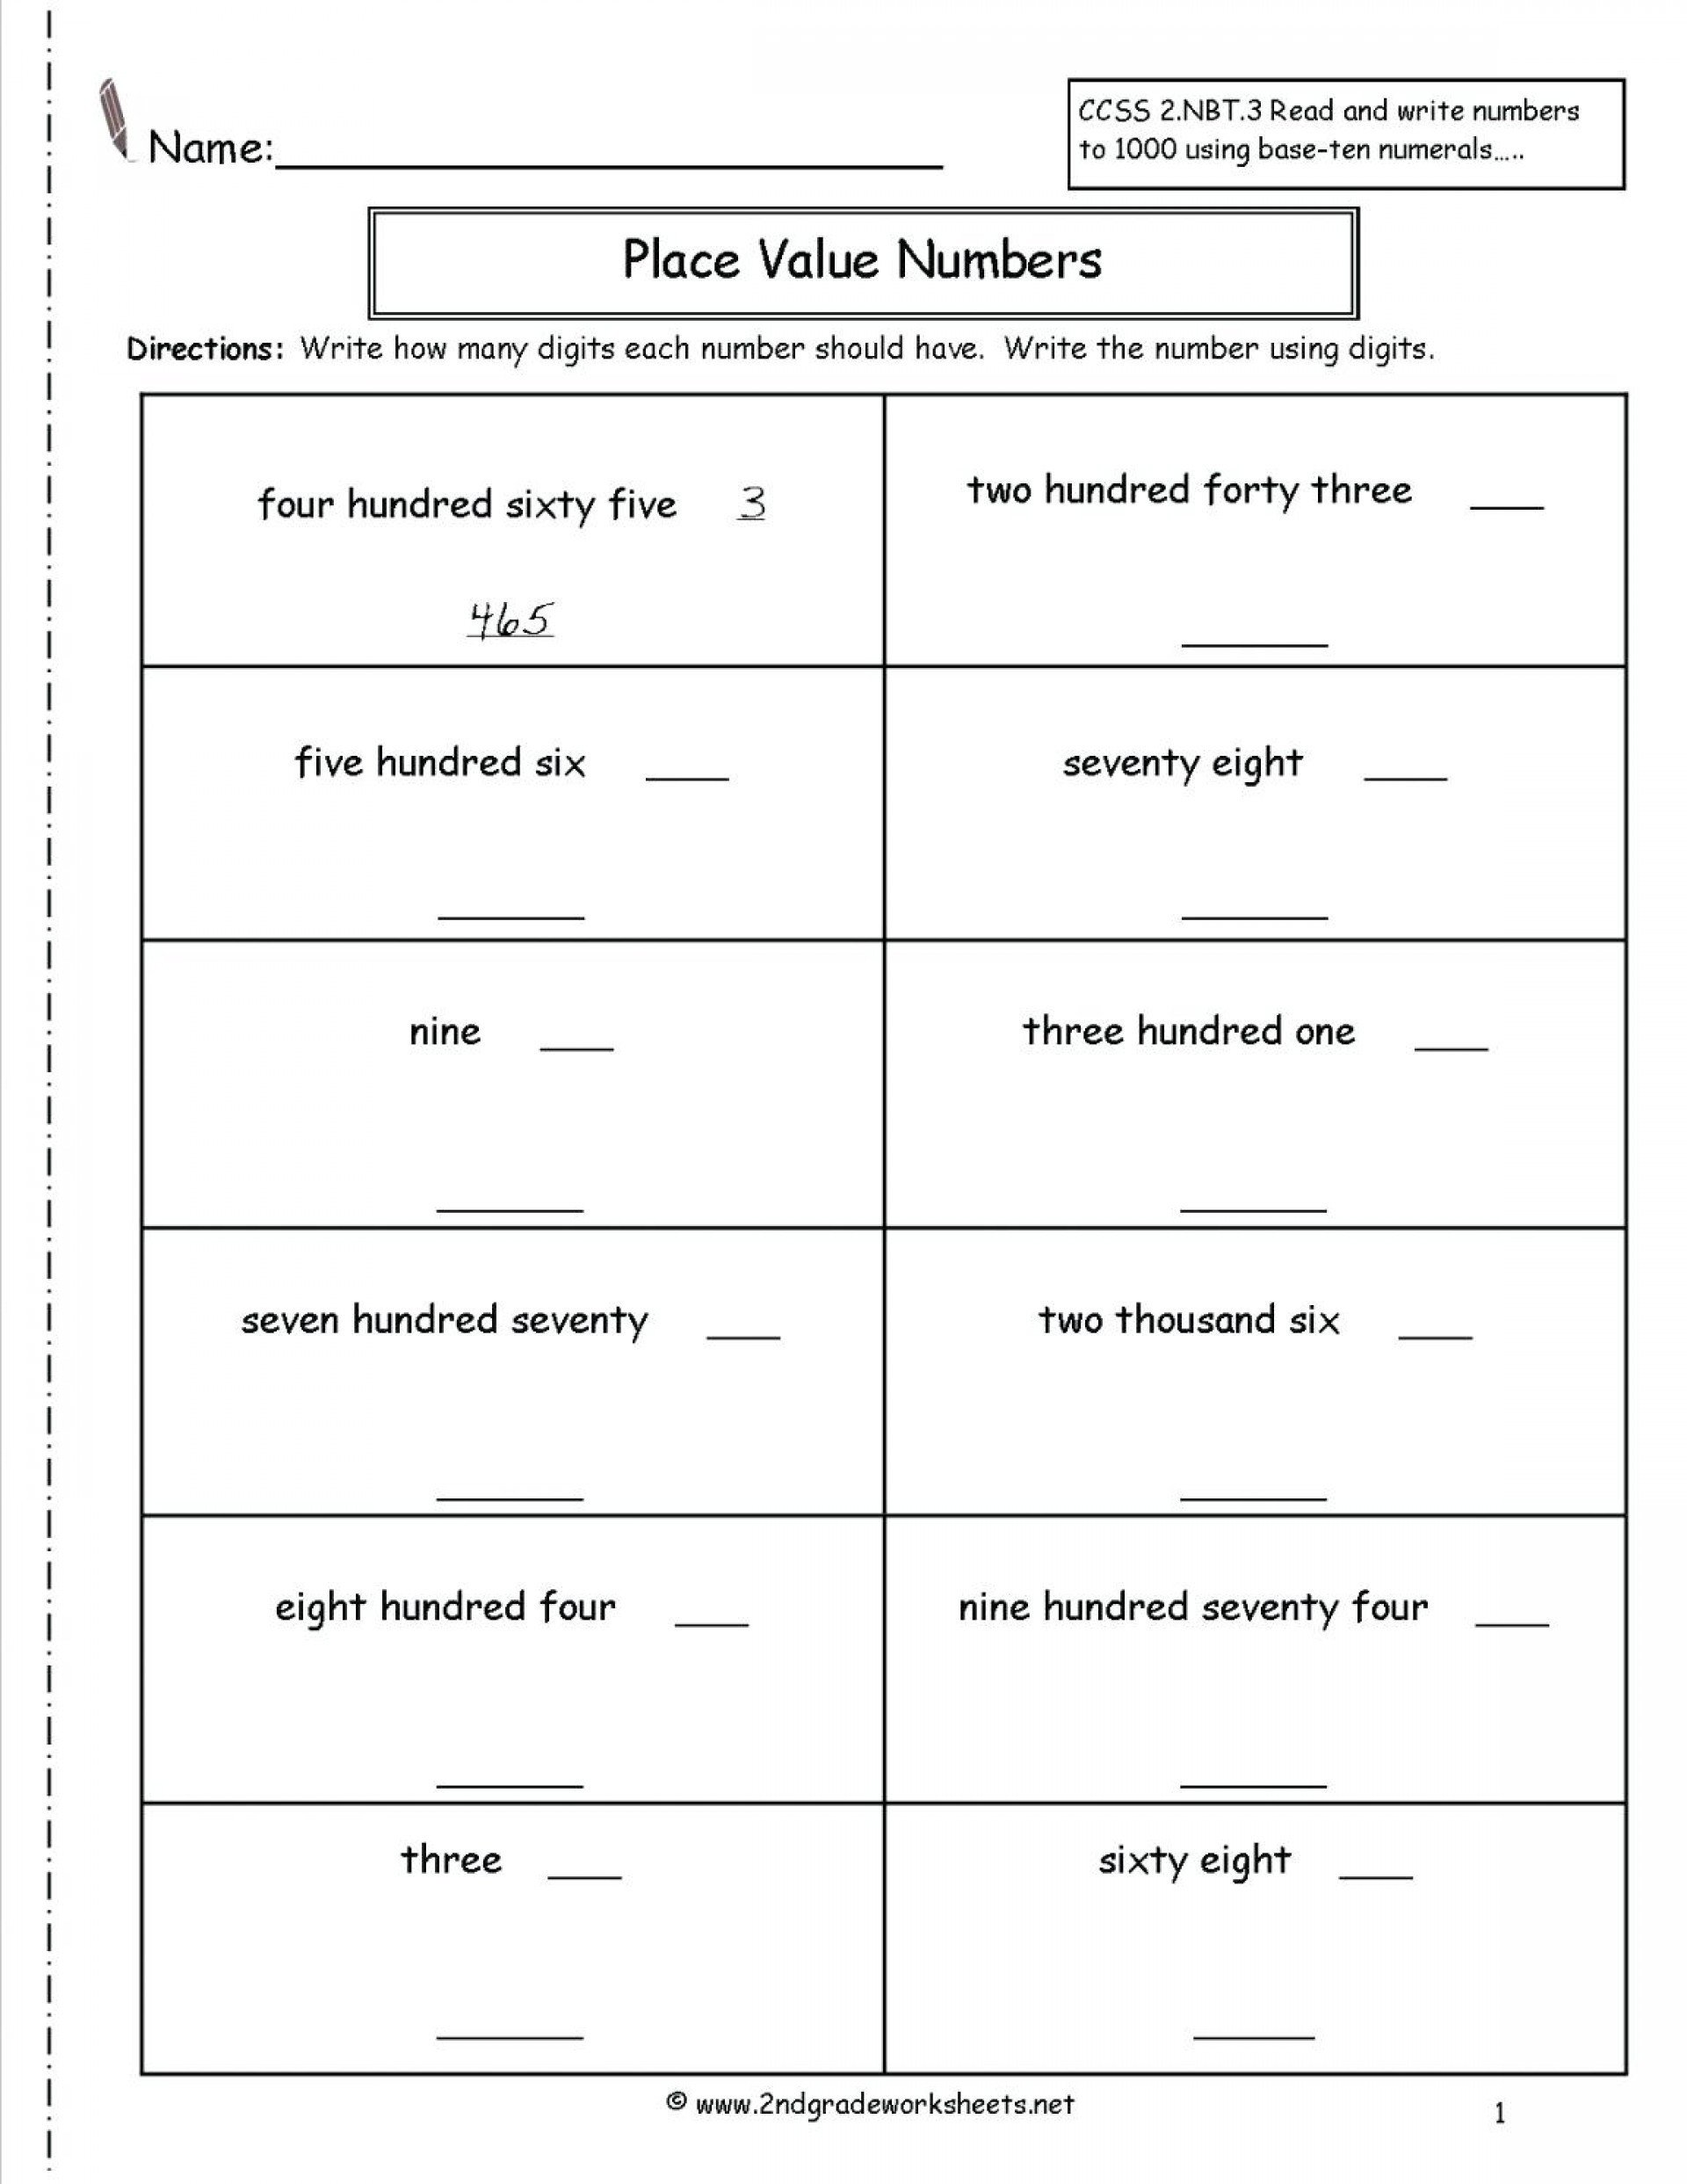 free math worksheets second grade 2 addition adding whole hundreds 3 addends of free math worksheets second grade 2 addition adding whole hundreds 3 addends